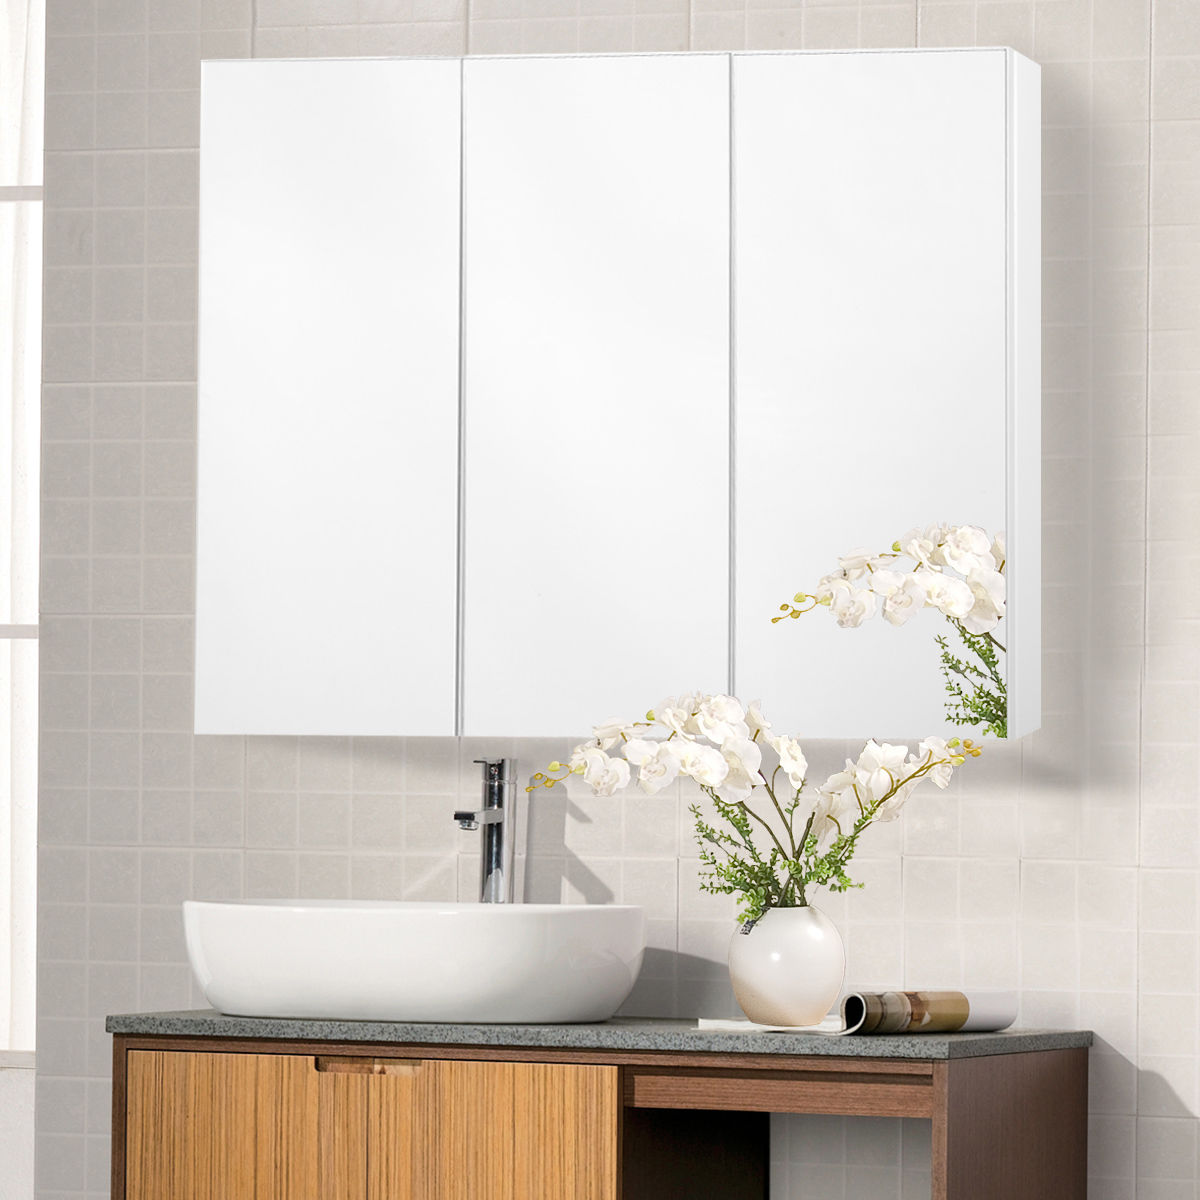 Costway 36u0027u0027 Wide Wall Mount Mirrored Bathroom Medicine Cabinet Storage 3  Mirror Door